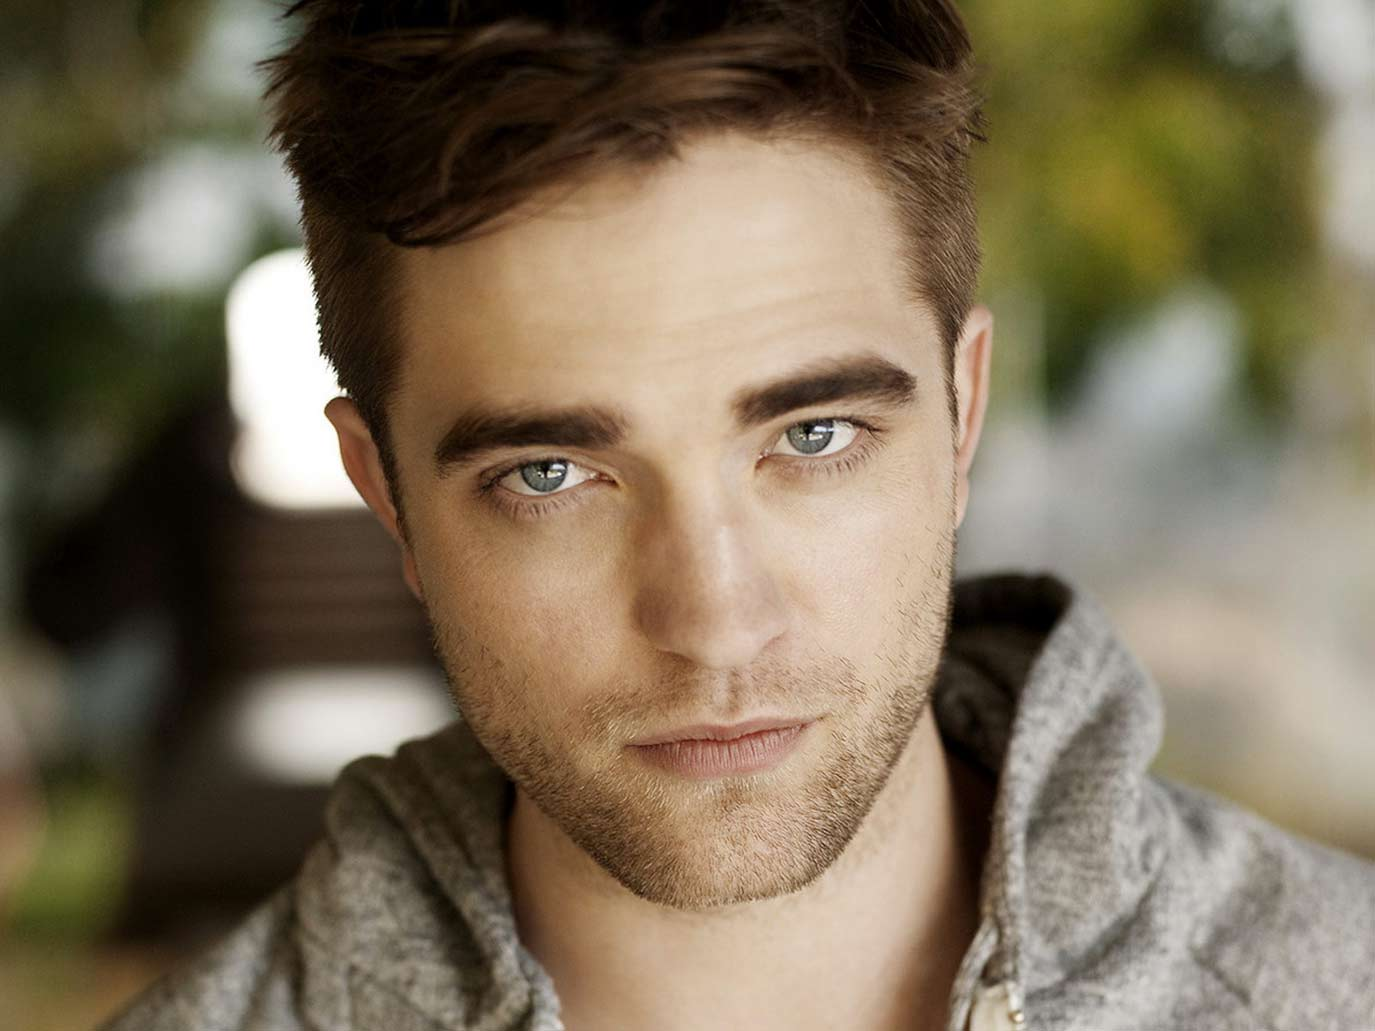 robert-pattinson-sexy-suit-hollywood-hot-sexiest-actor-men-movie-star-handsome-recent-vampire